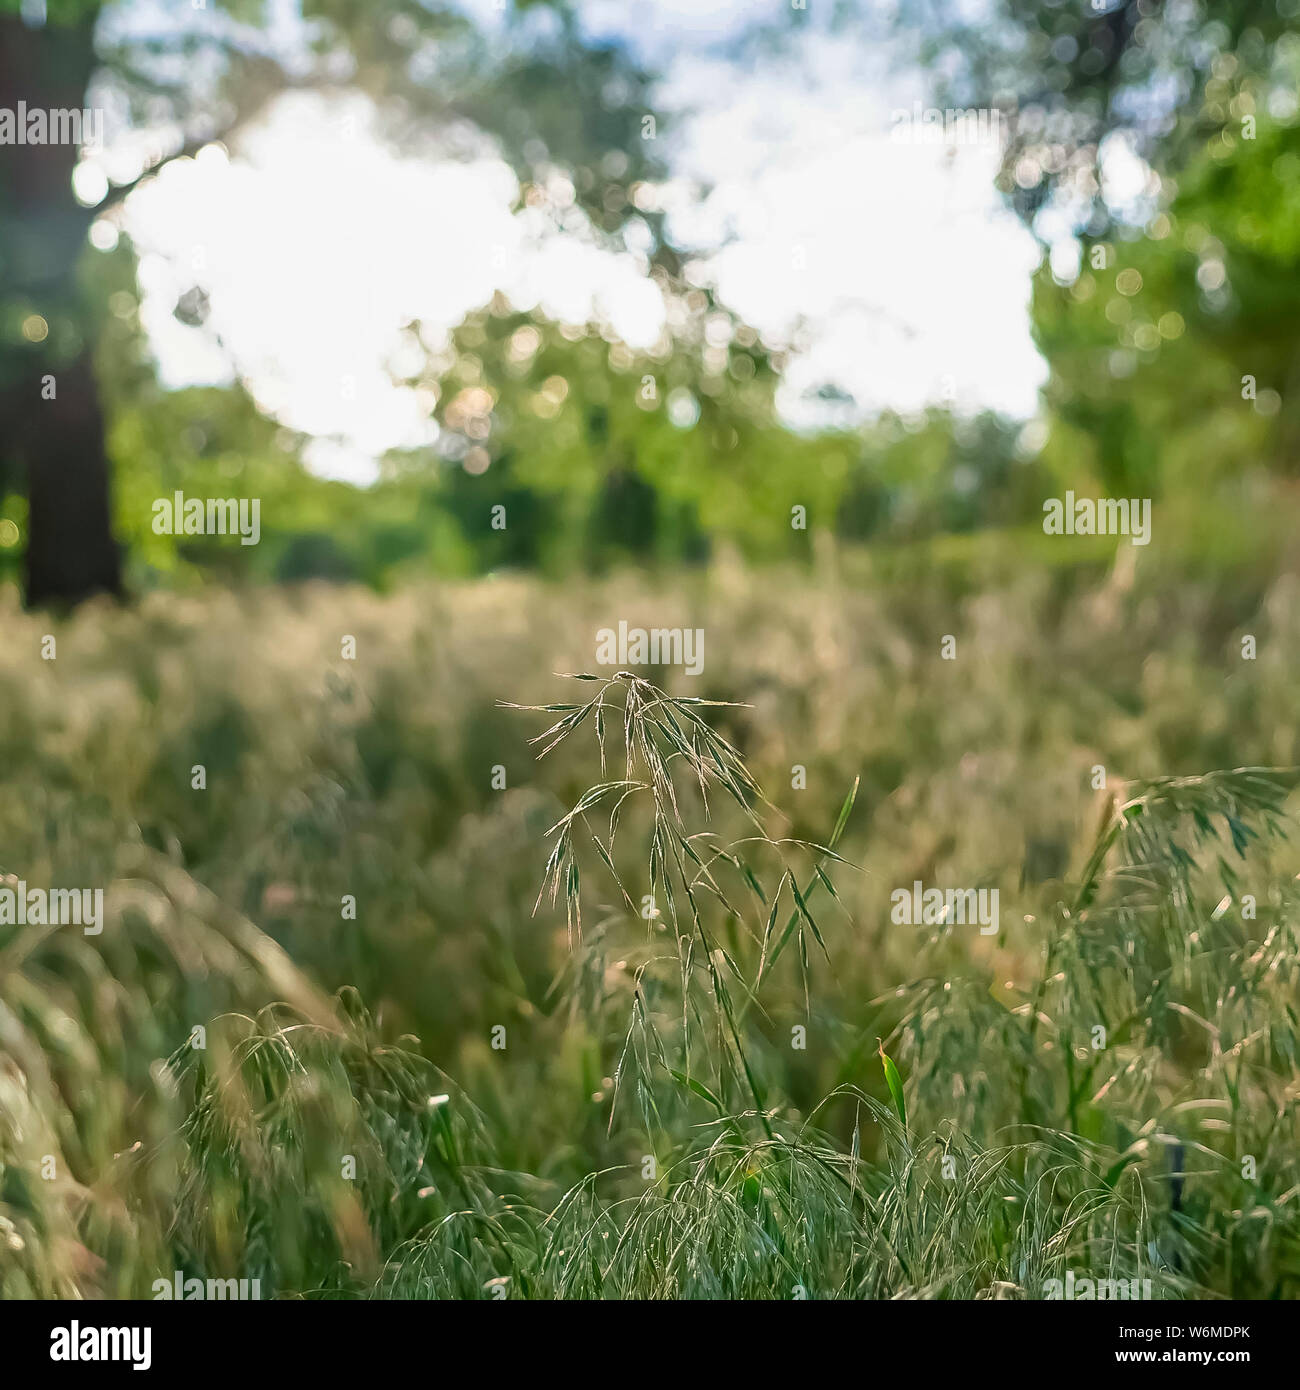 Square frame Prolific sunlit green grasses growing in the wilderness viewed on a sunny day Stock Photo